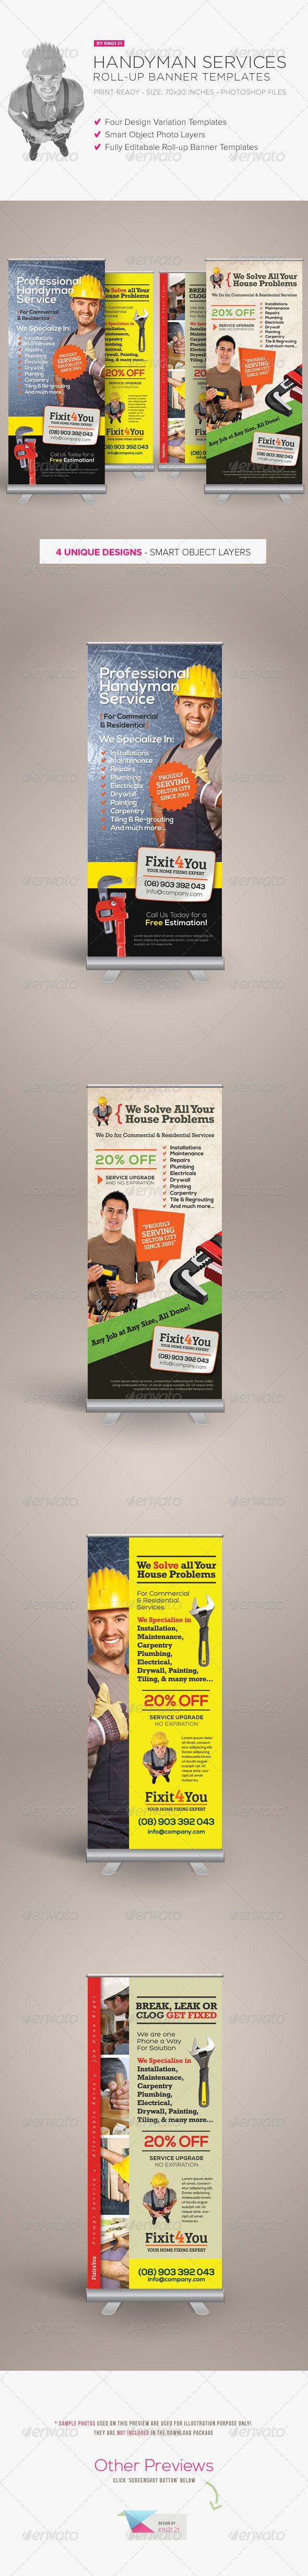 Handyman Services Rollup Banners — Photoshop PSD #handyman #residential • Available here → https://graphicriver.net/item/handyman-services-rollup-banners/8143394?ref=pxcr